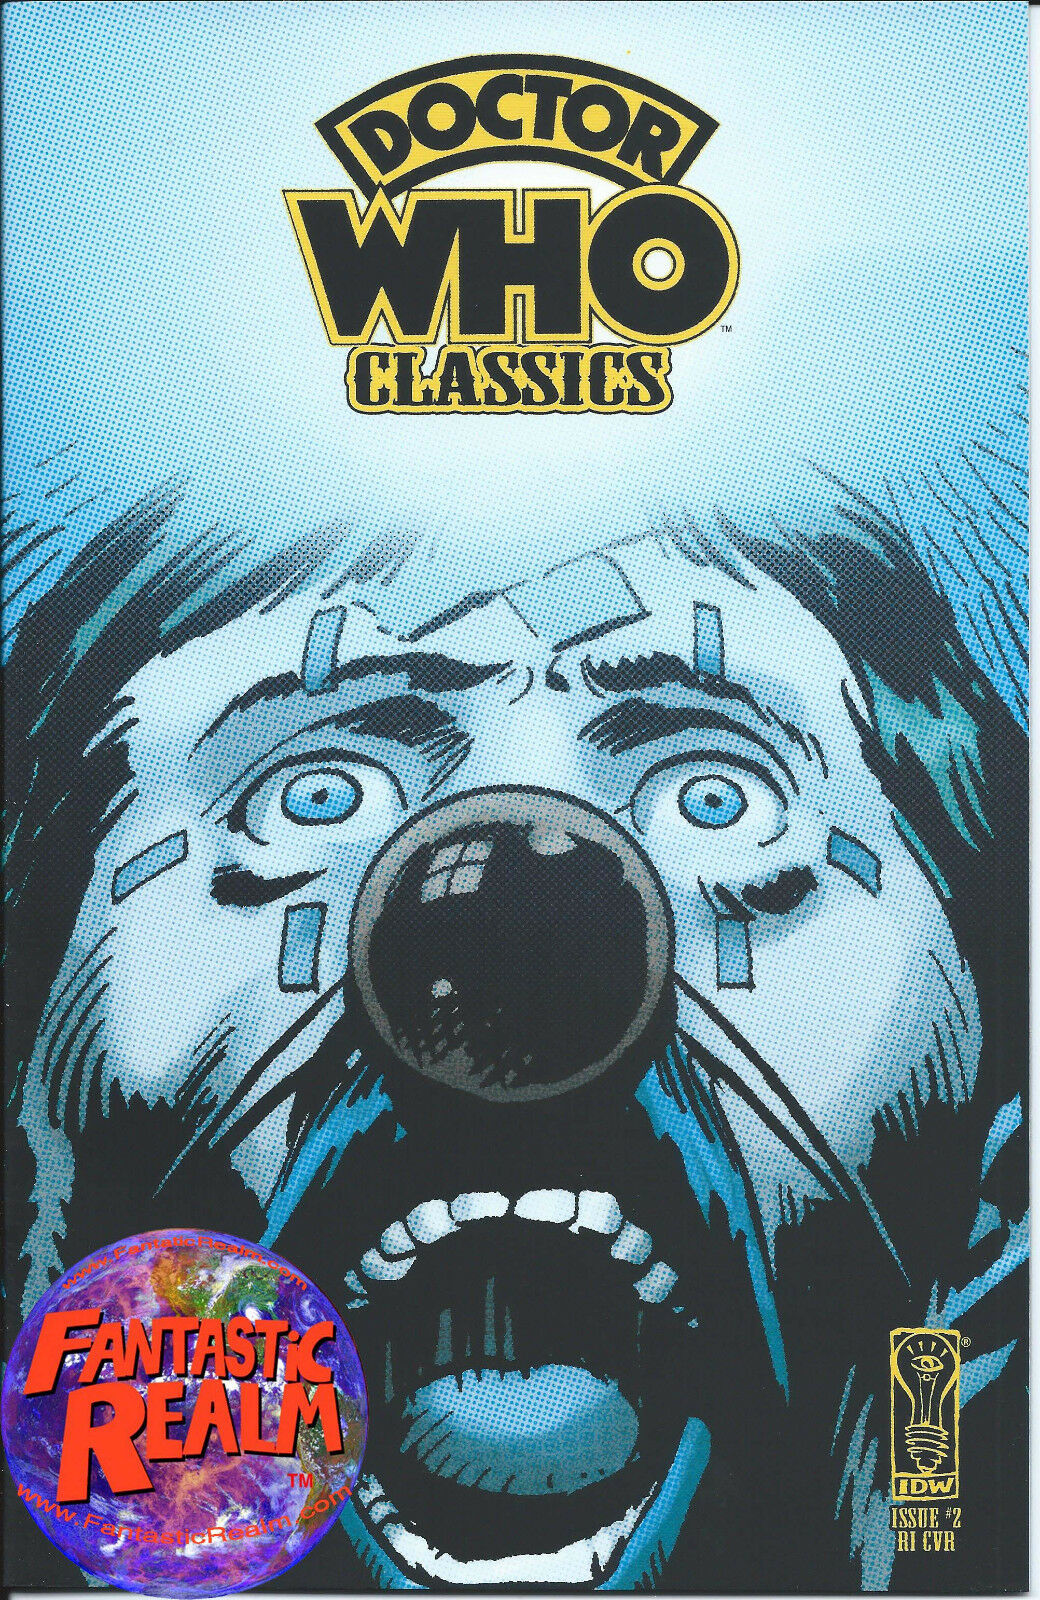 DOCTOR WHO CLASSICS #2 (IDW) 1:10 RETAILER INCENTIVE VARIANT COMIC